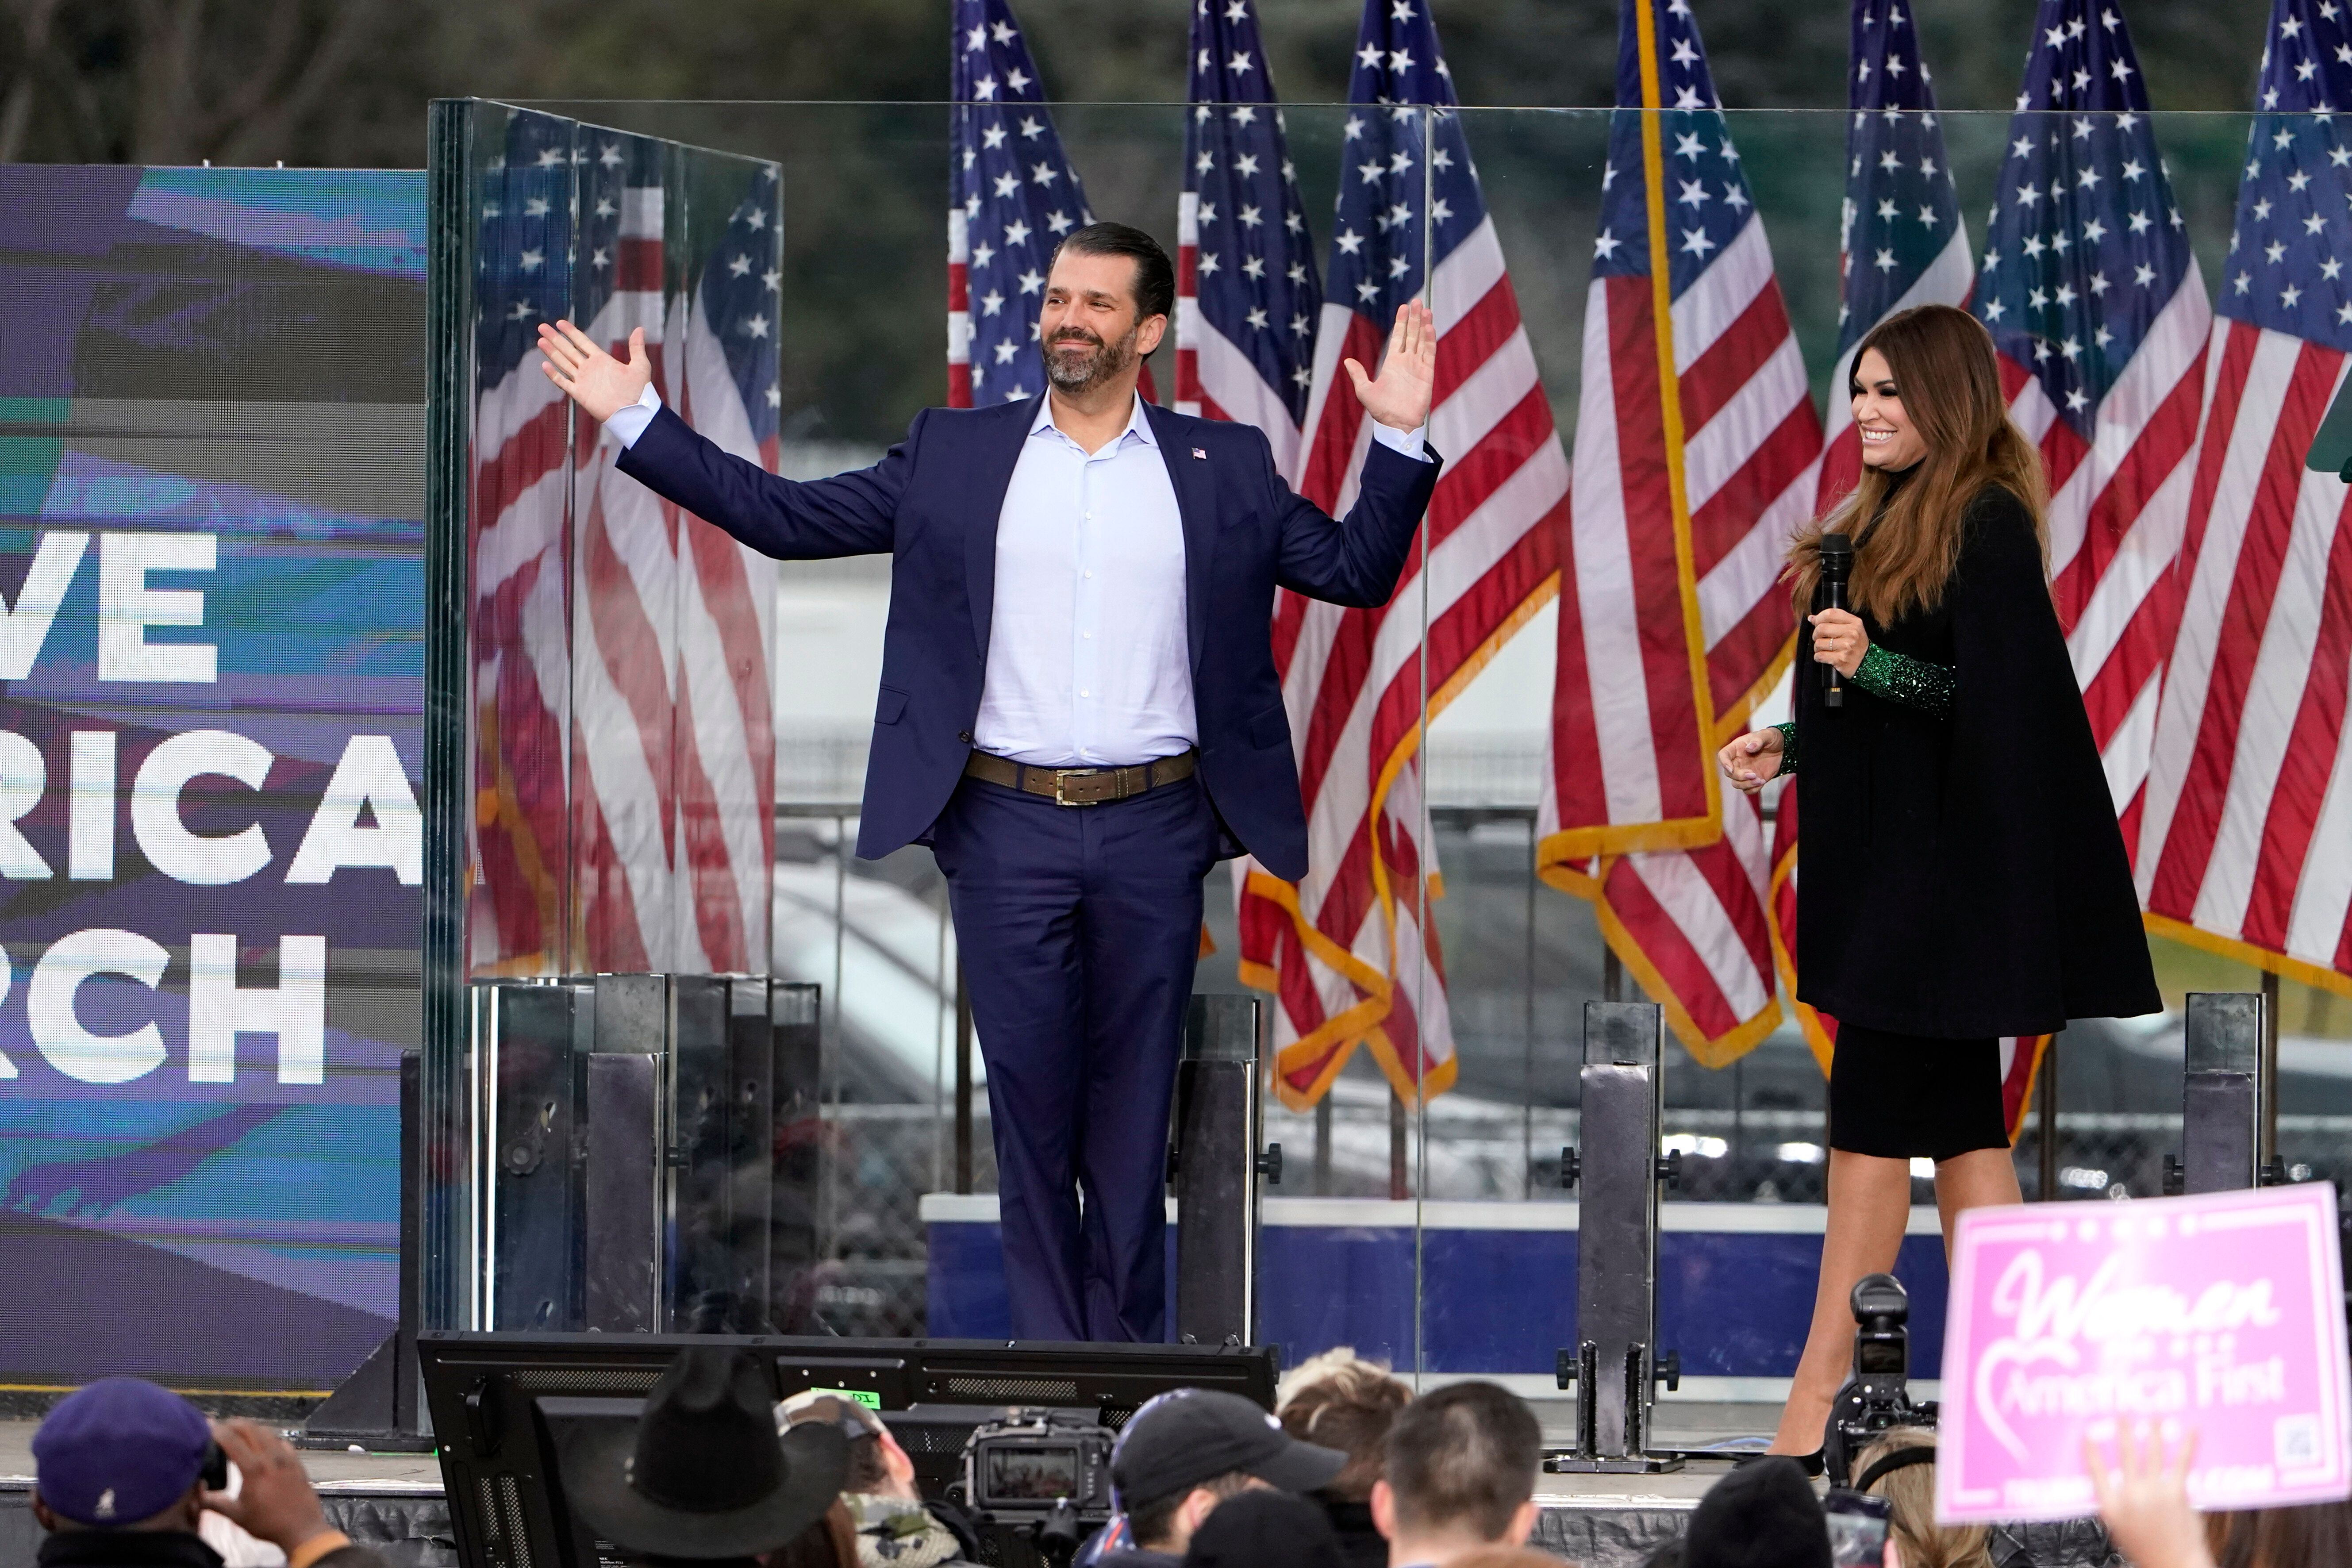 Donald Trump Jr. arrives on stage as Kimberly Guilfoyle speaks Wednesday, Jan. 6, 2021, in Washington, at a rally in support